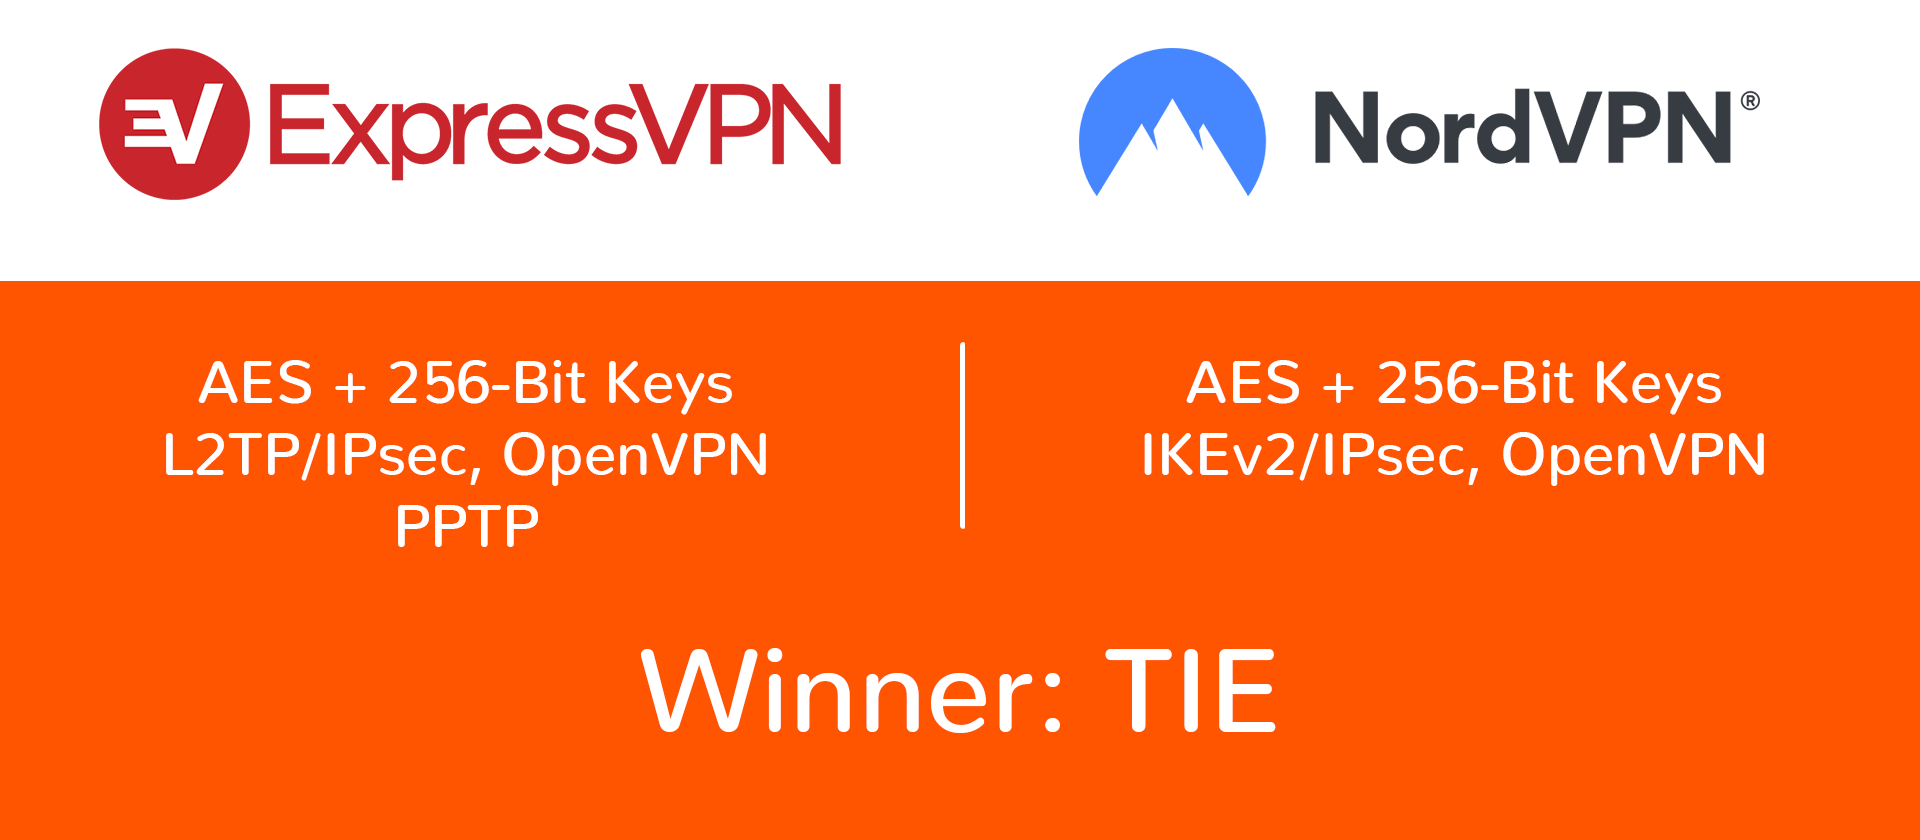 nordvpn and expressvpn encryption and protocols